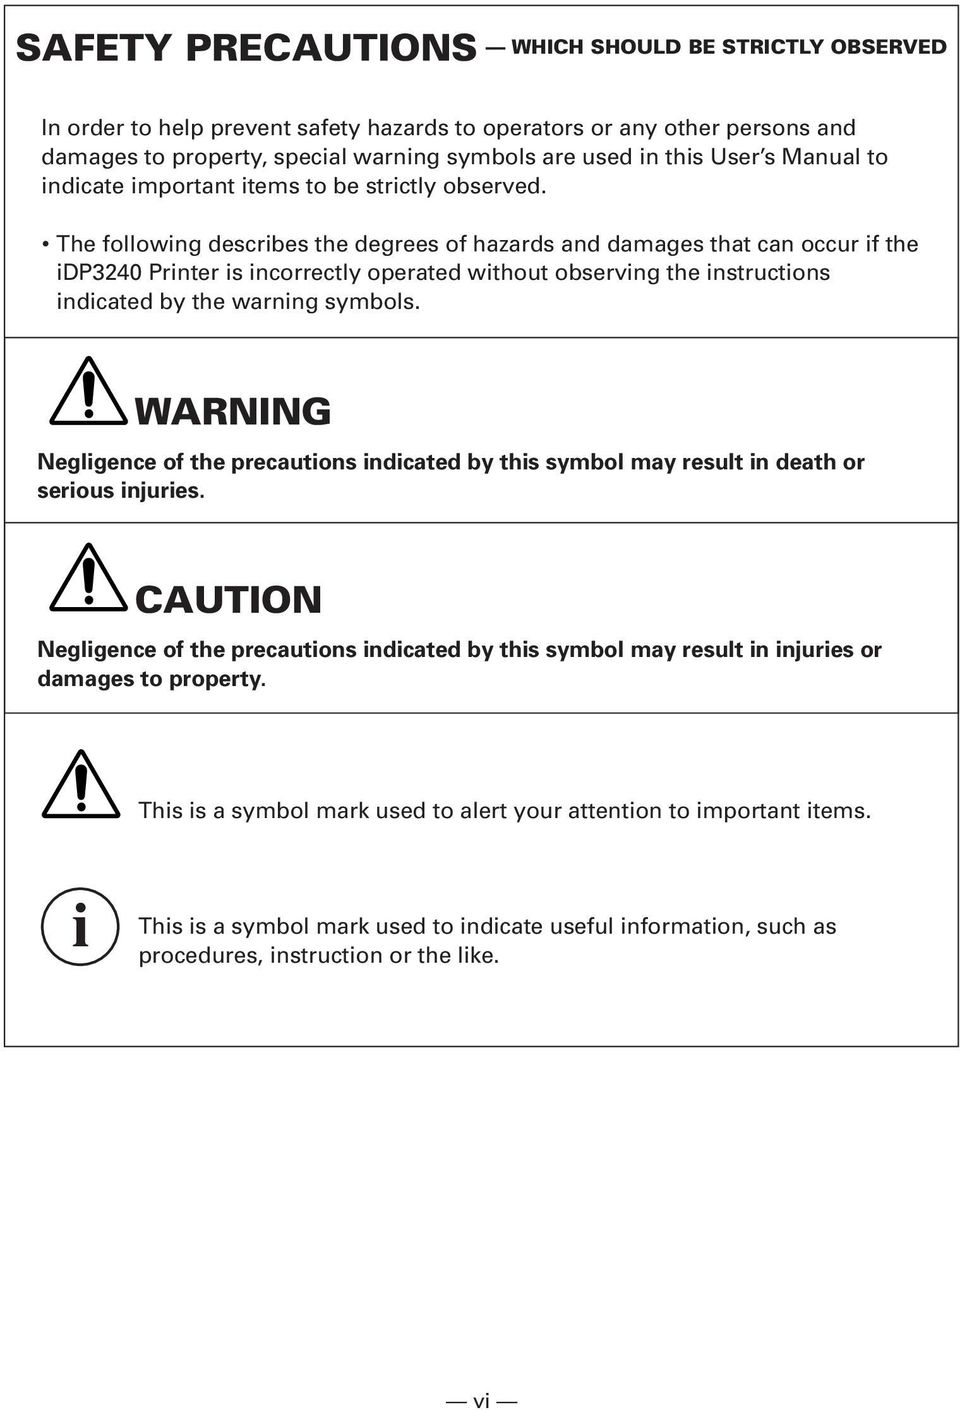 The following describes the degrees of hazards and damages that can occur if the idp3240 Printer is incorrectly operated without observing the instructions indicated by the warning symbols.